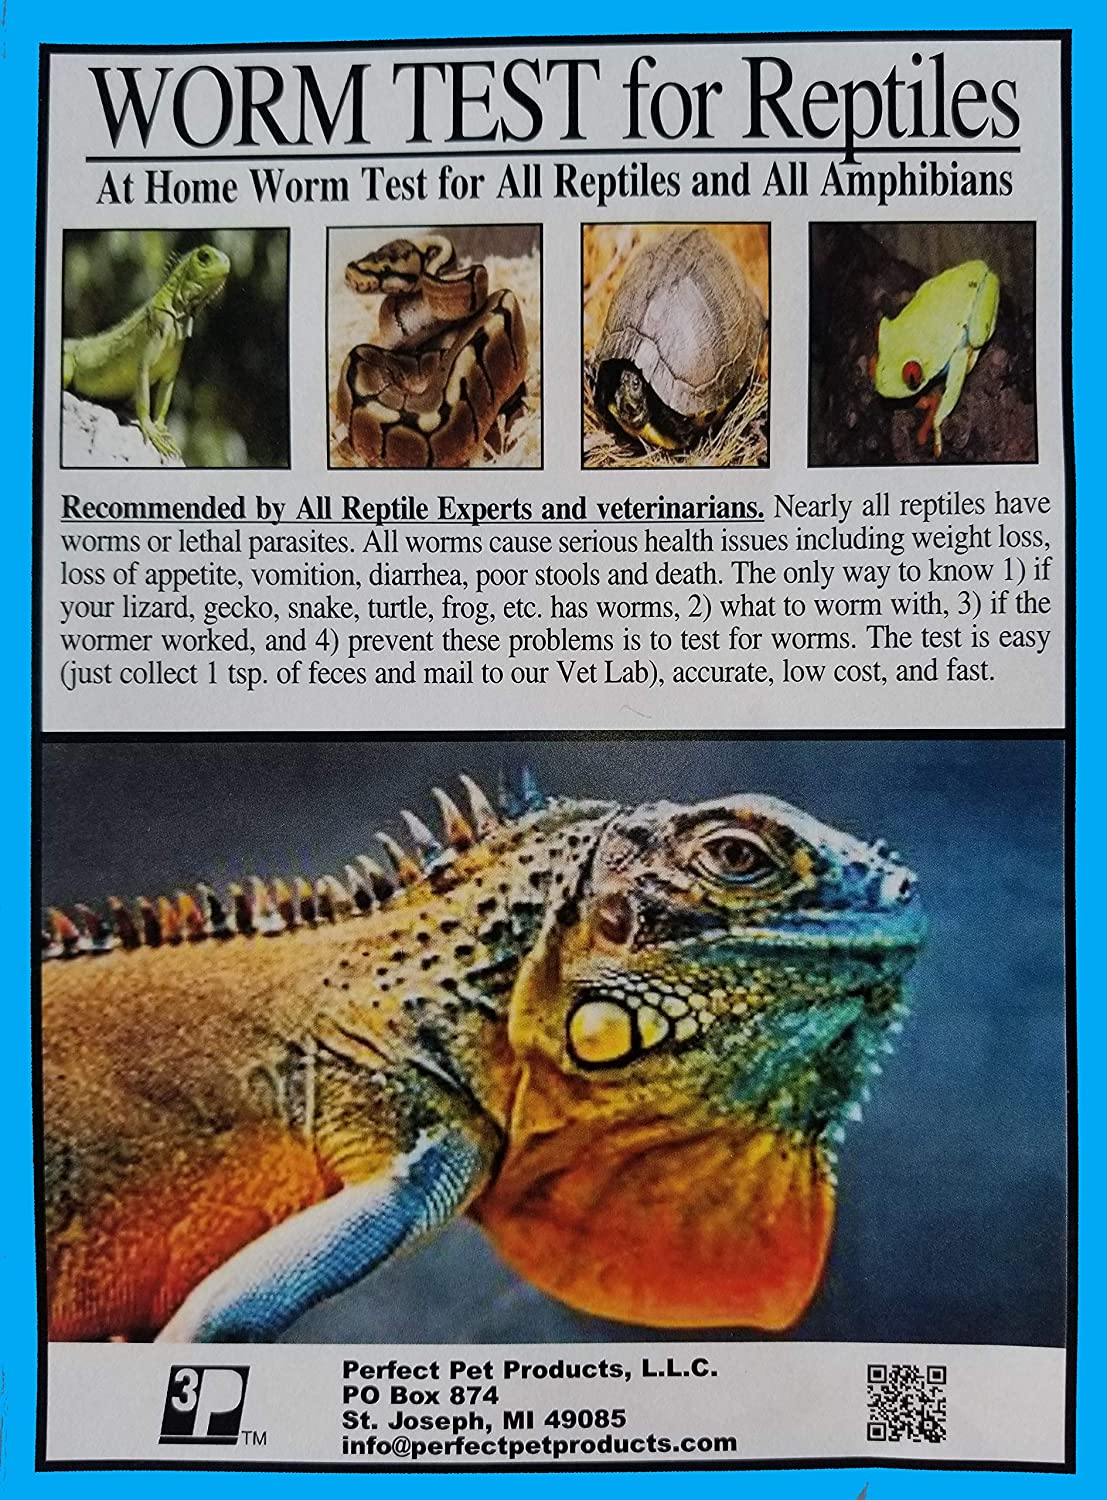 WORM TEST for ALL REPTILES and ALL AMPHIBIANS